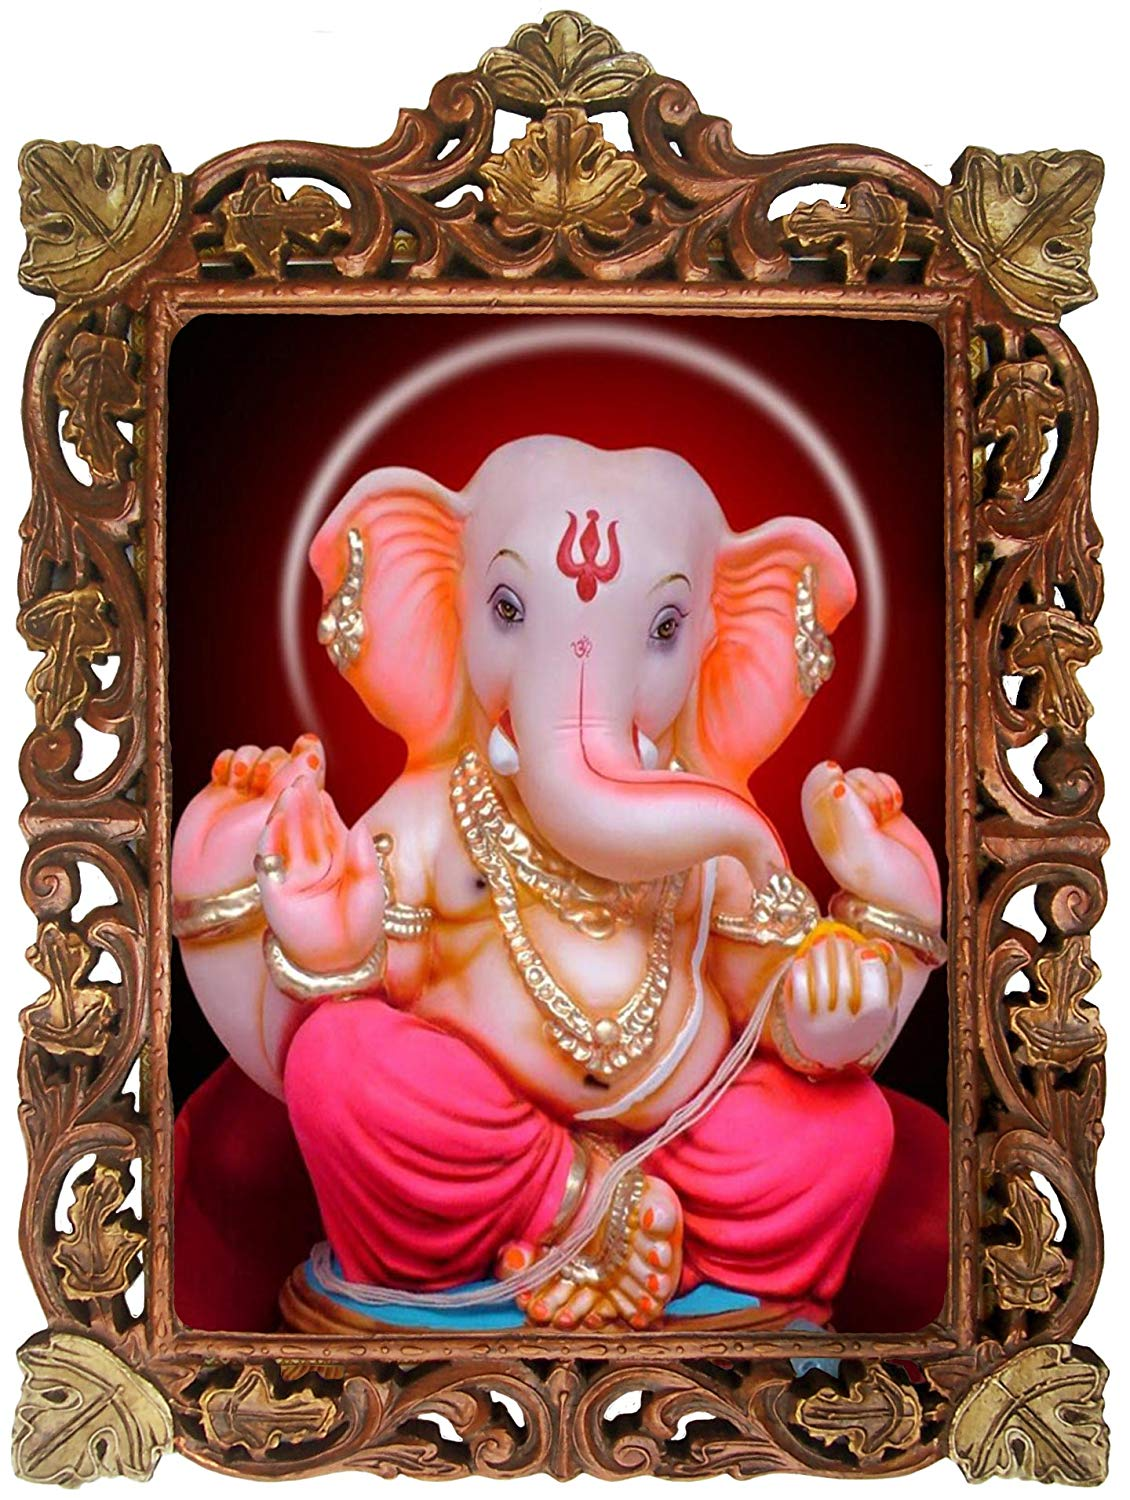 Ganesha Statue Made on Marble Poster Frame in Handcrafted Wood Craft Frame, Indian Handicrafts